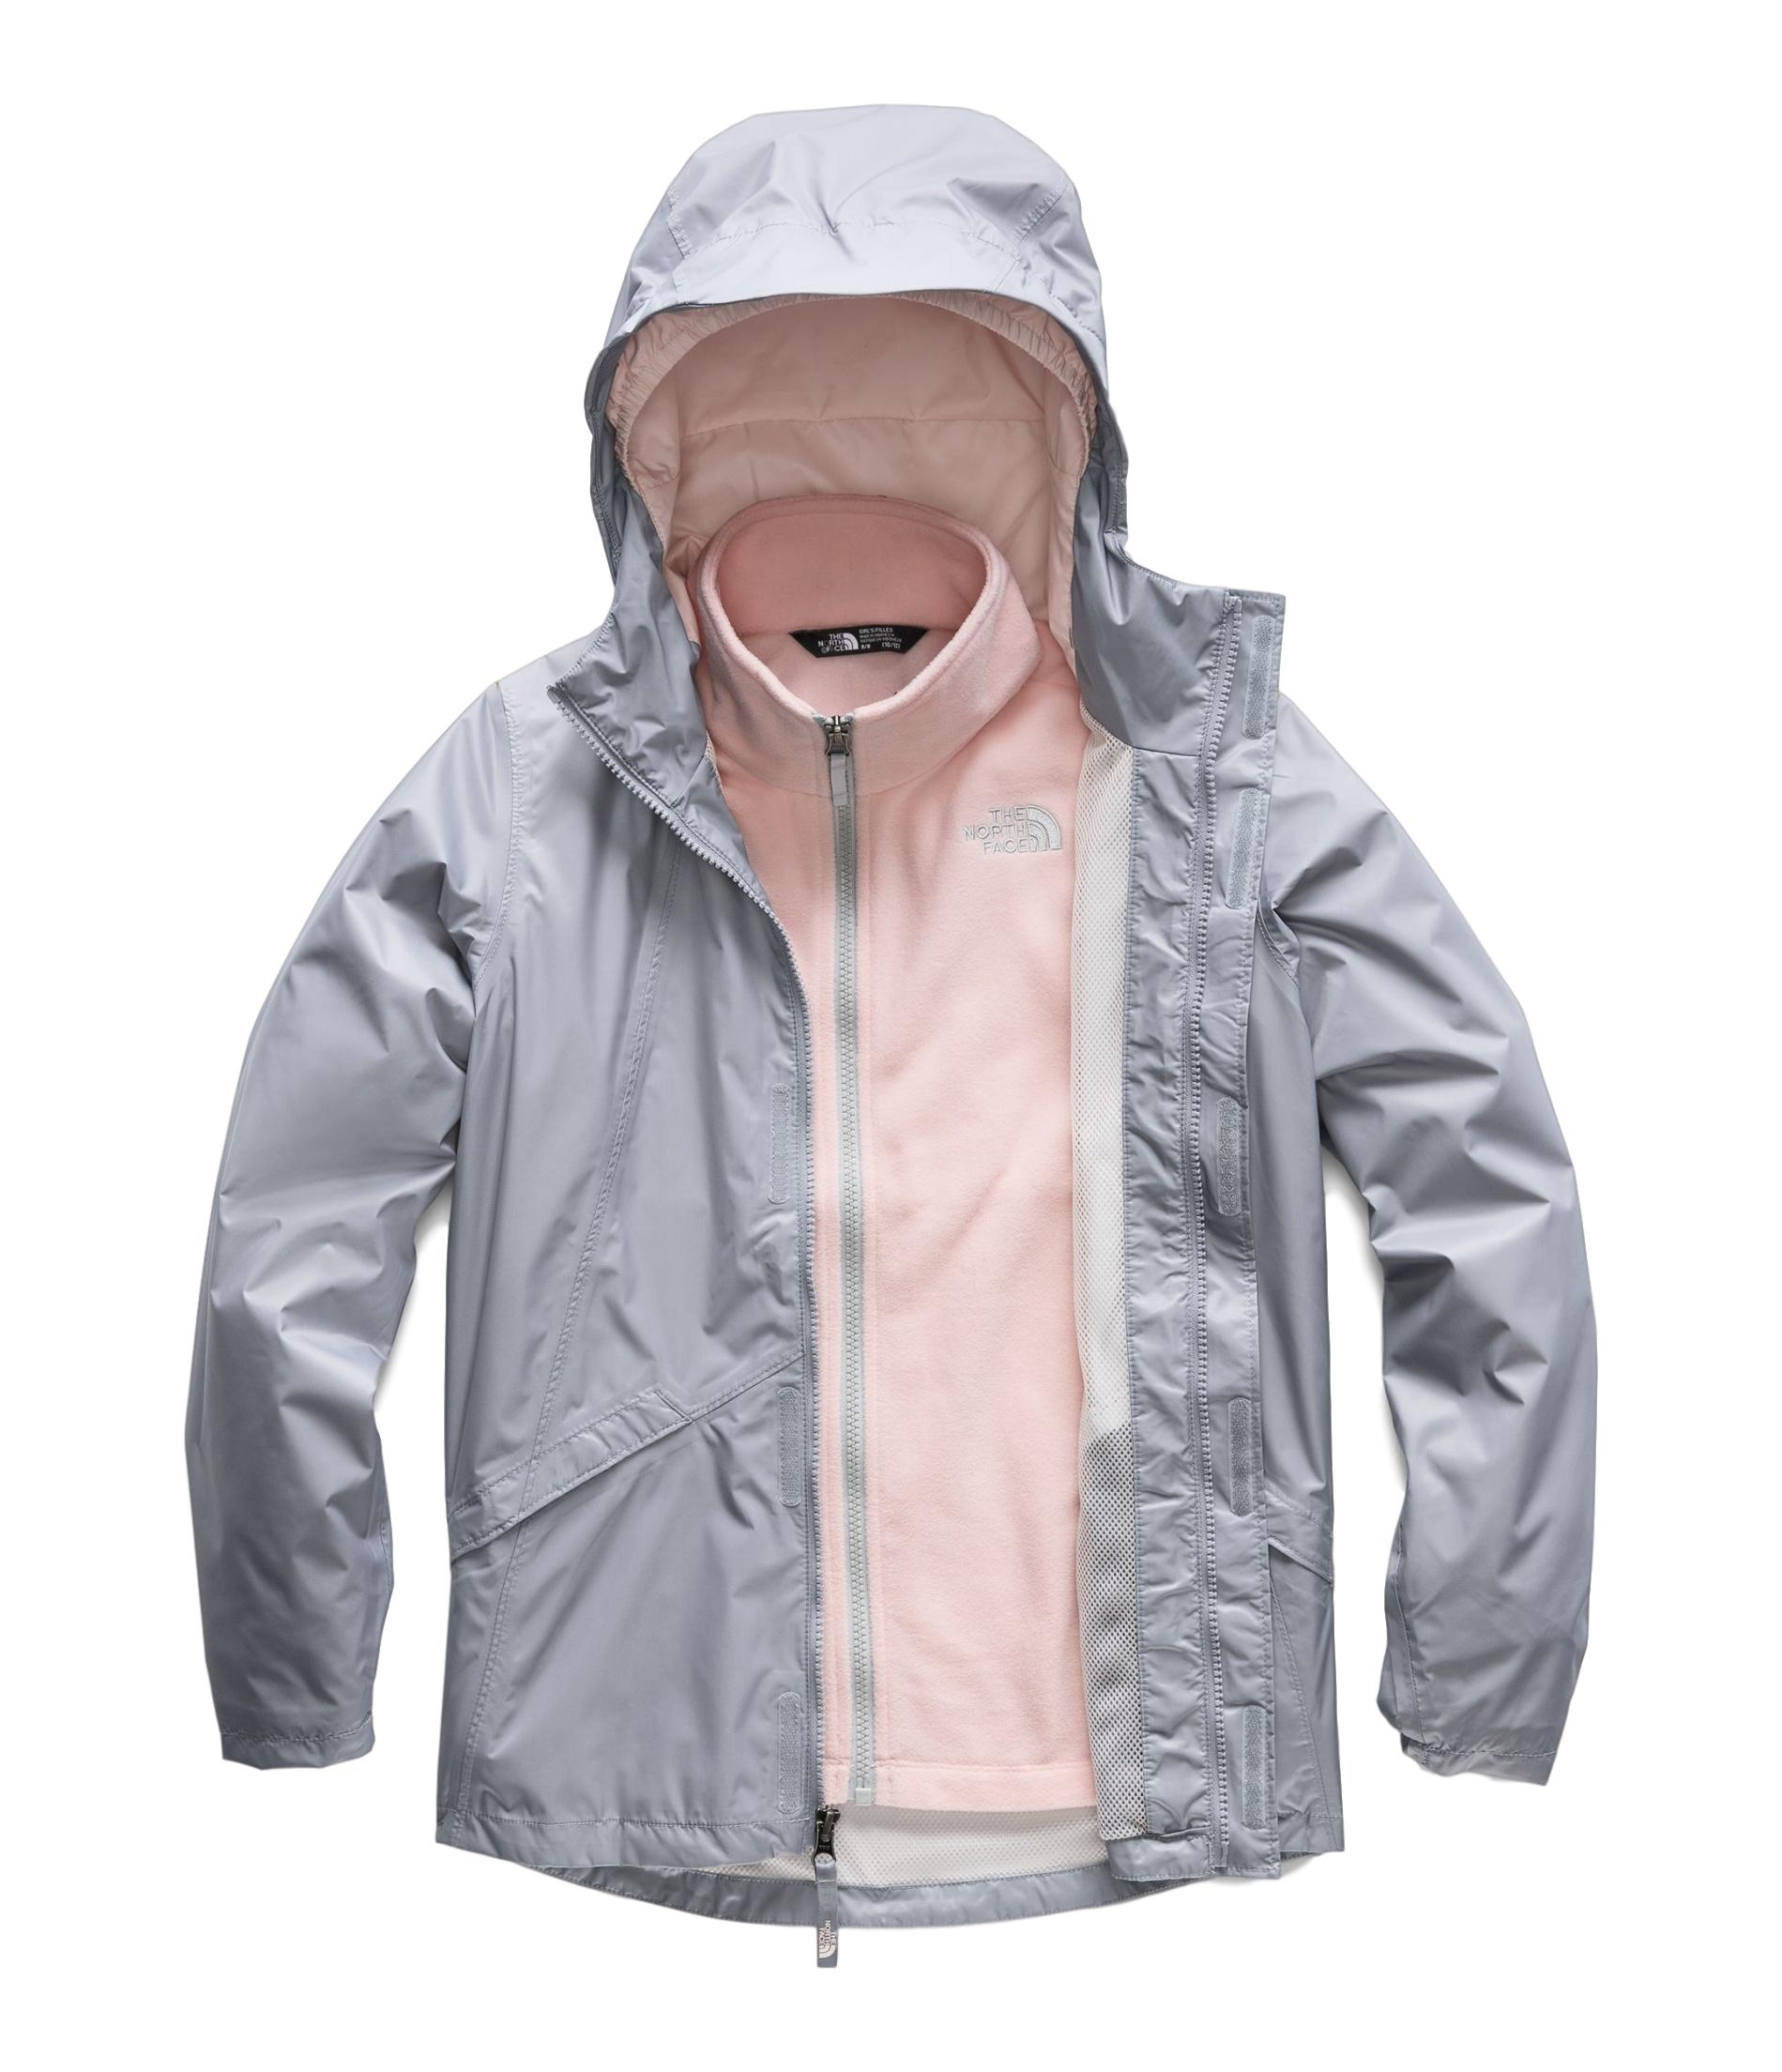 b407fdf88 The North Face Girls Stormy Rain Triclimate Jacket - Kid's